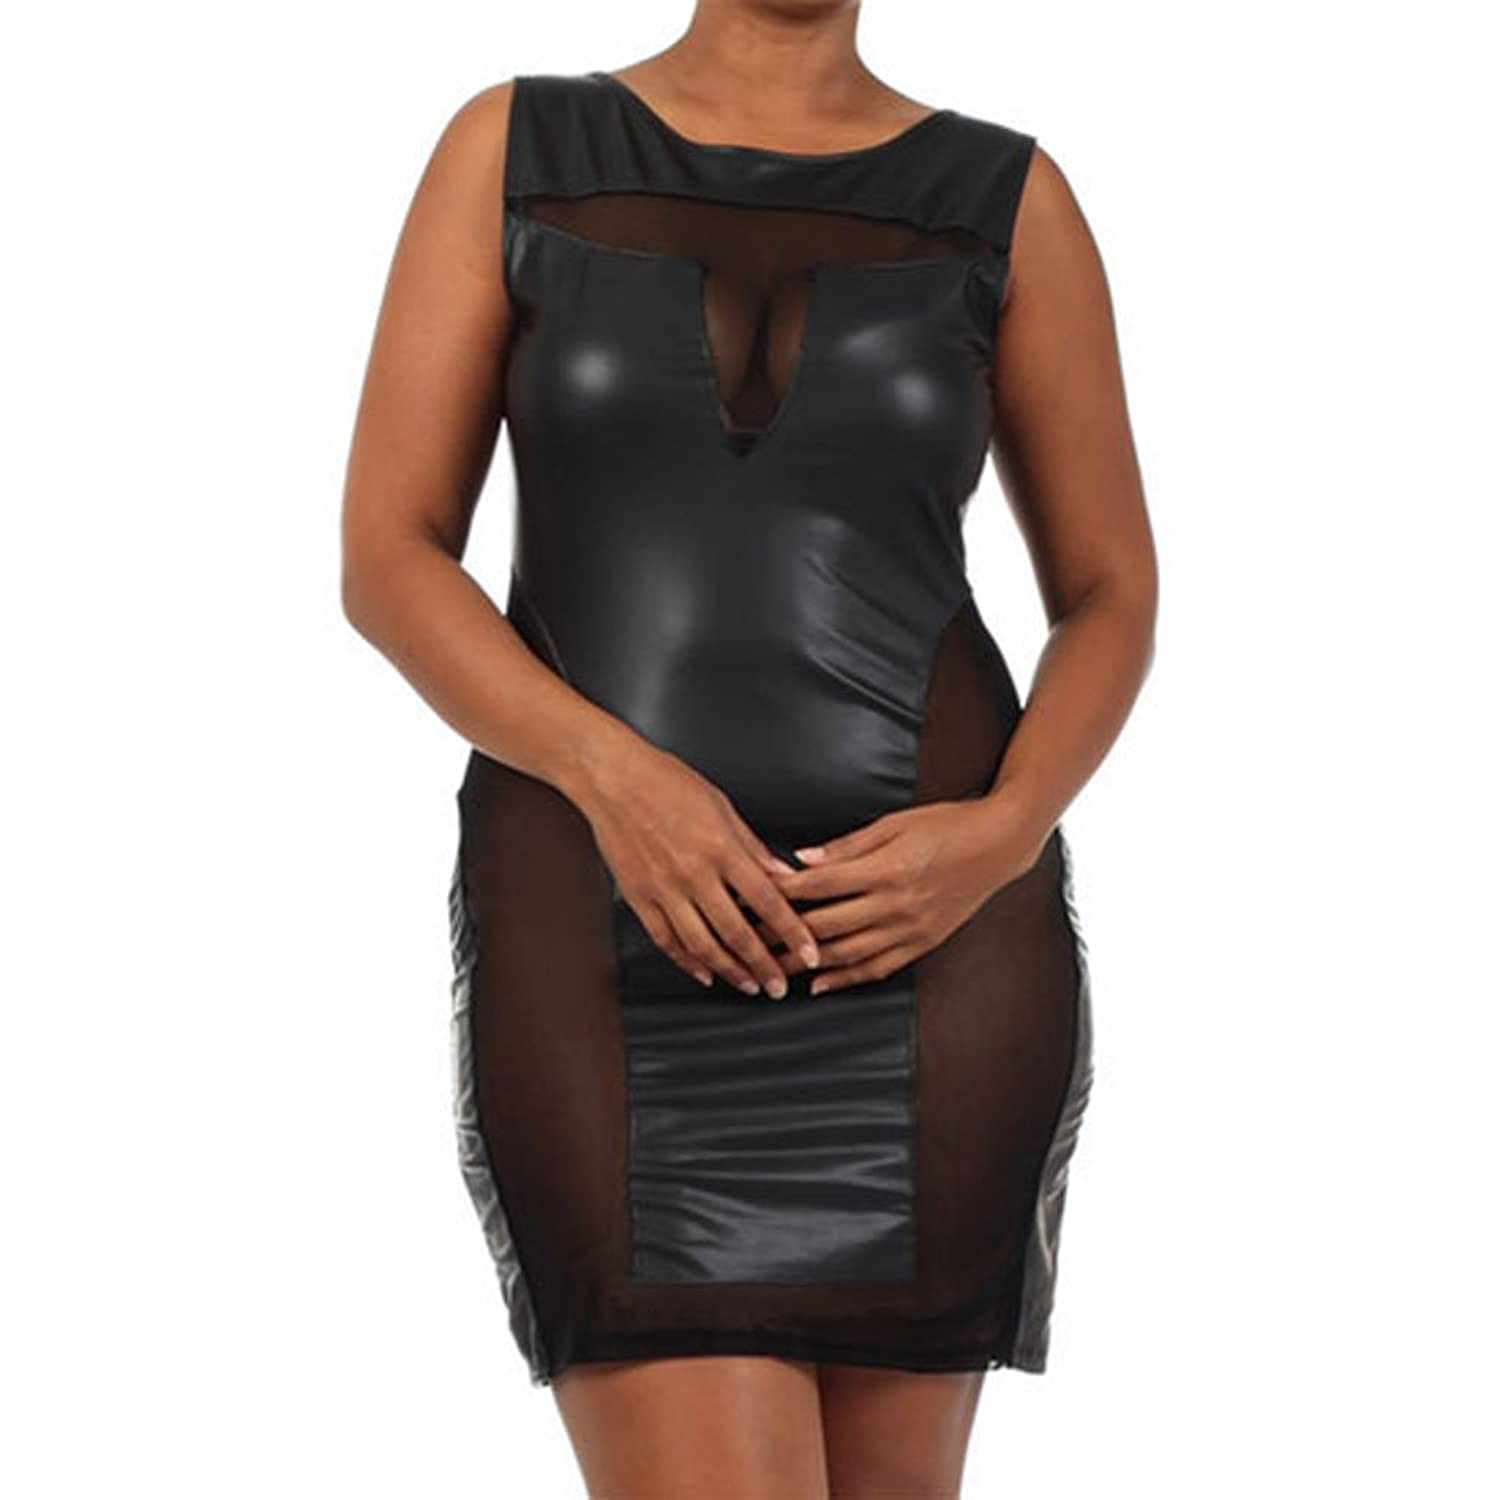 00061 - Plus Size Sexy Mesh Panel Cut Out Pleather Club Dress Black